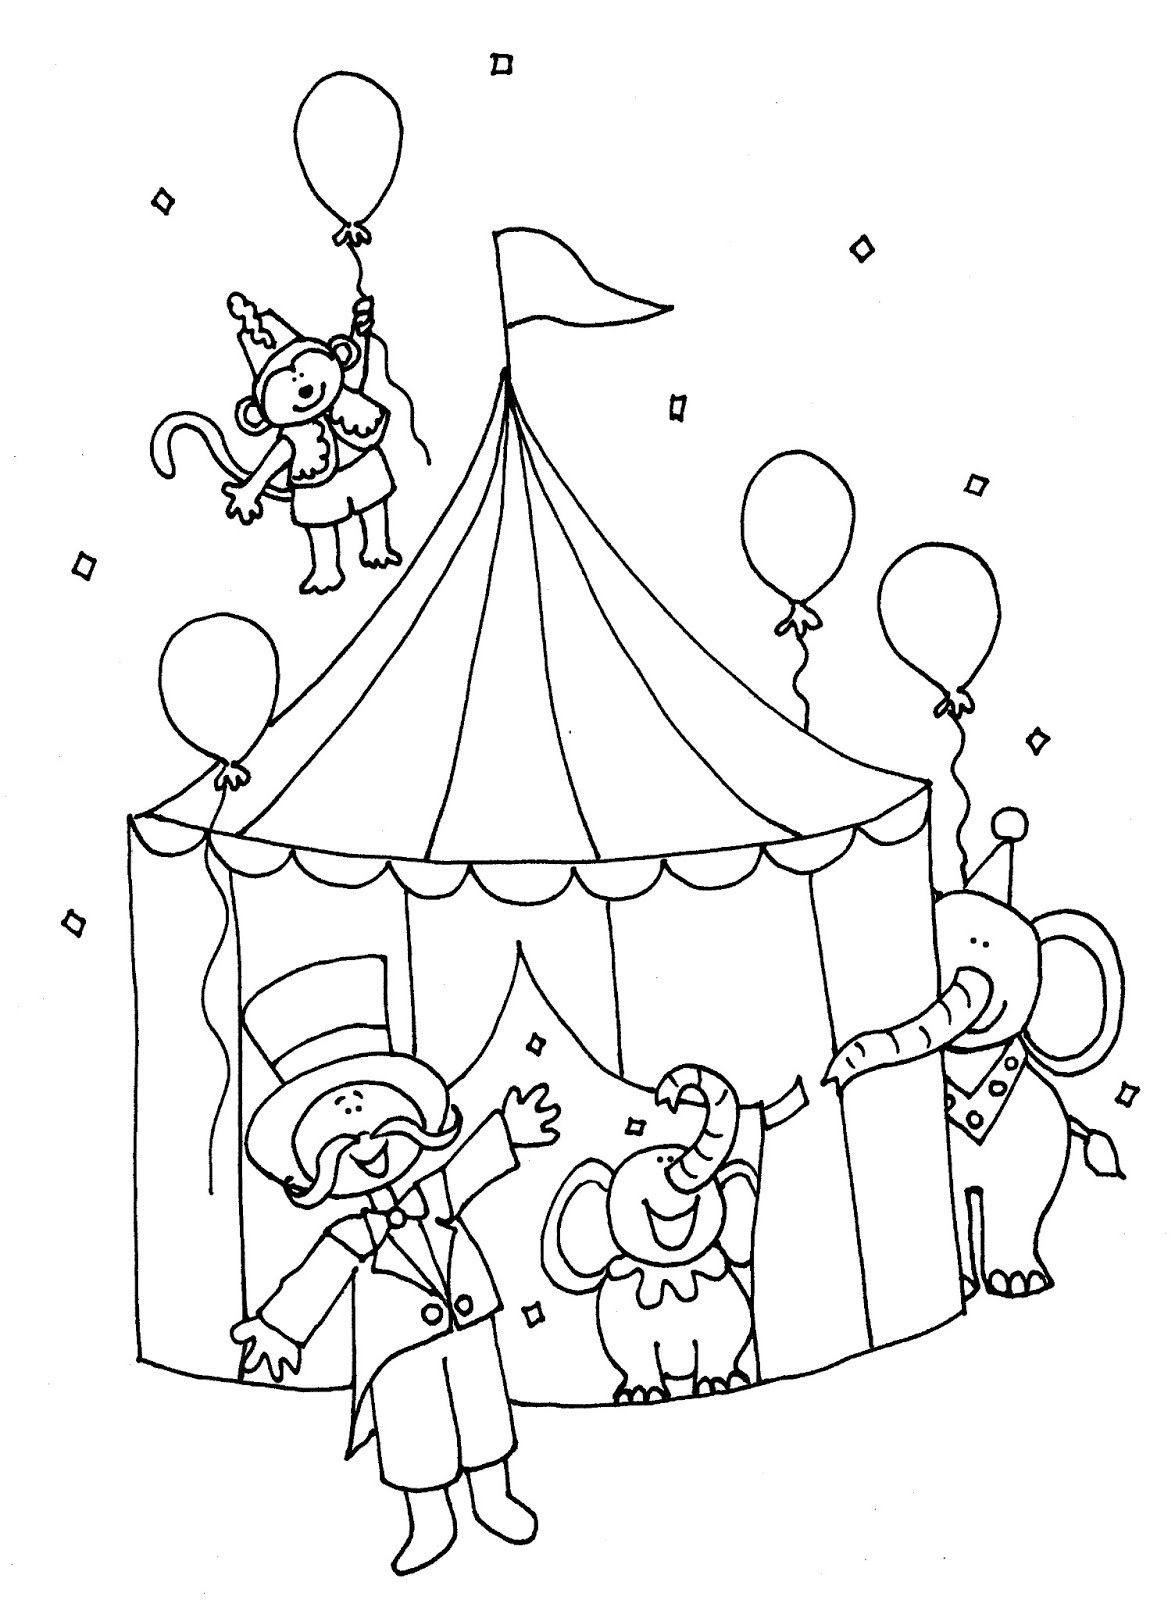 circus coloring pages for preschool circus printables circus clowns color page coloring circus coloring for pages preschool